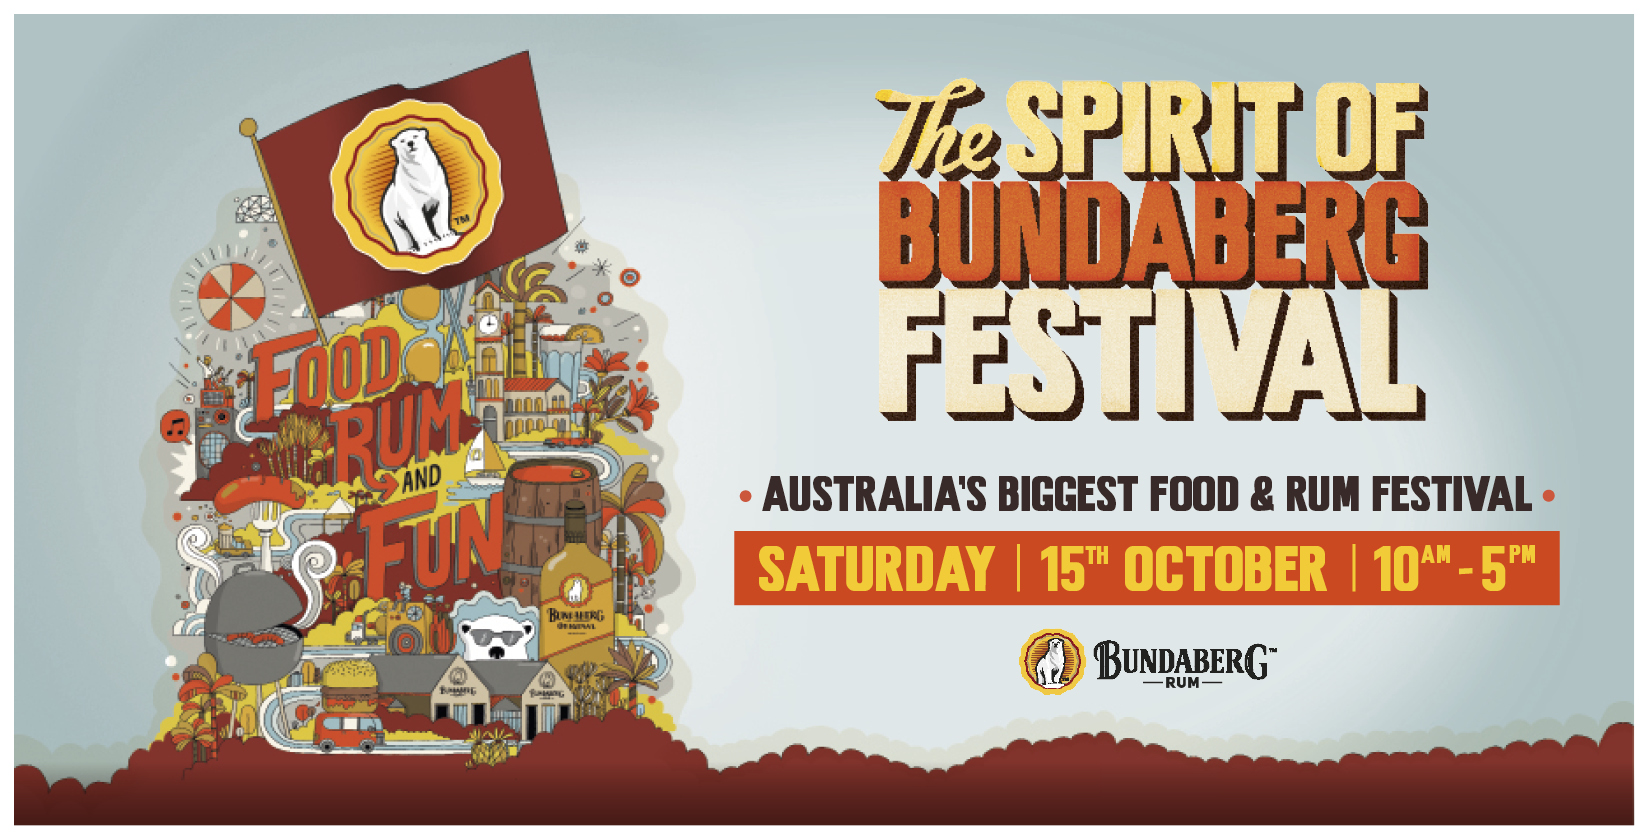 spirit-of-bundaberg-festival